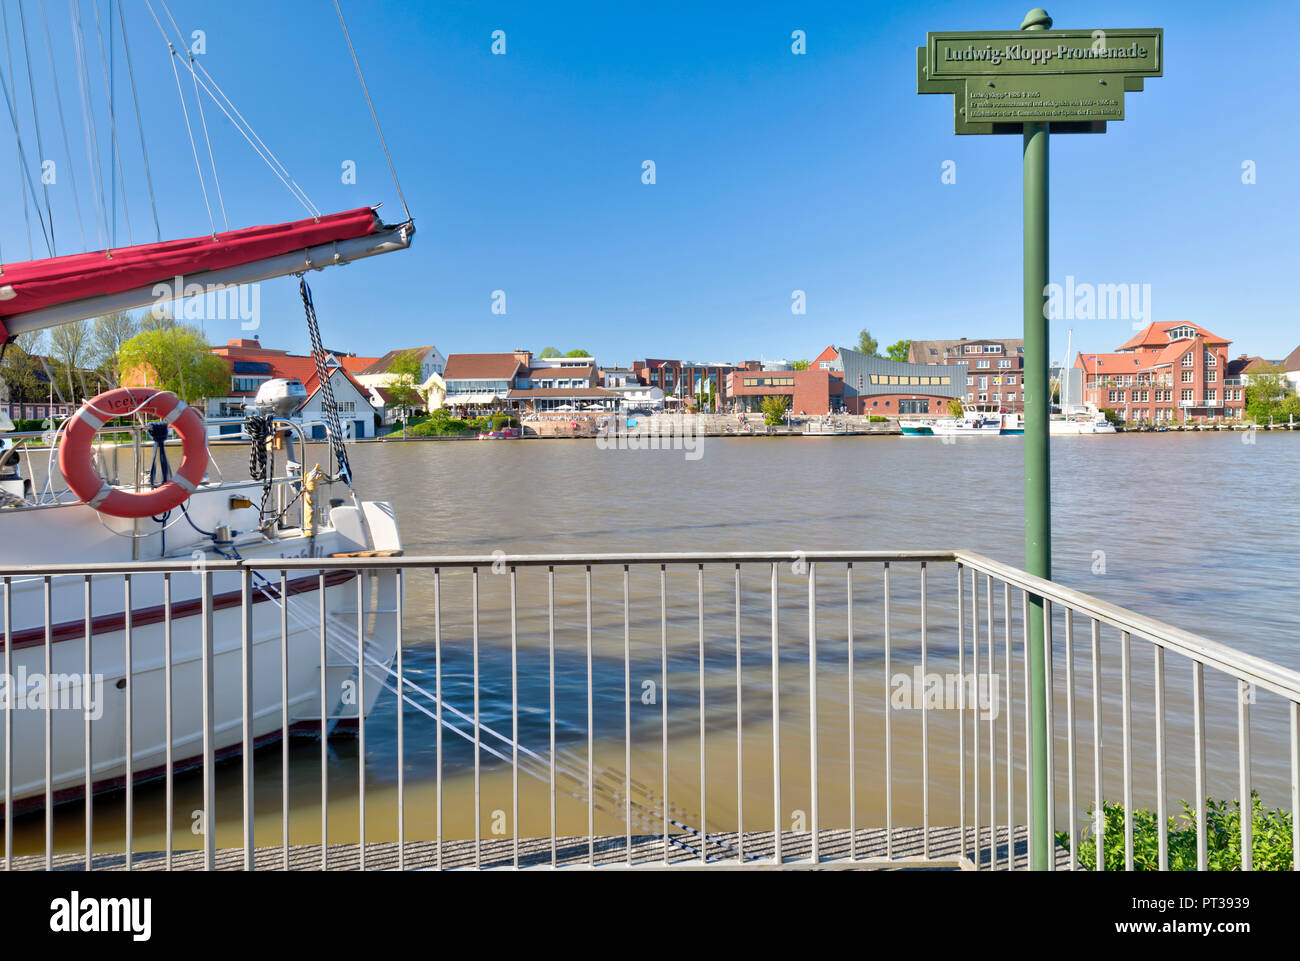 Ludwig Klopp Promenade, River, Leda, Leer, East Frisia, Lower Saxony, Germany, Europe, - Stock Image